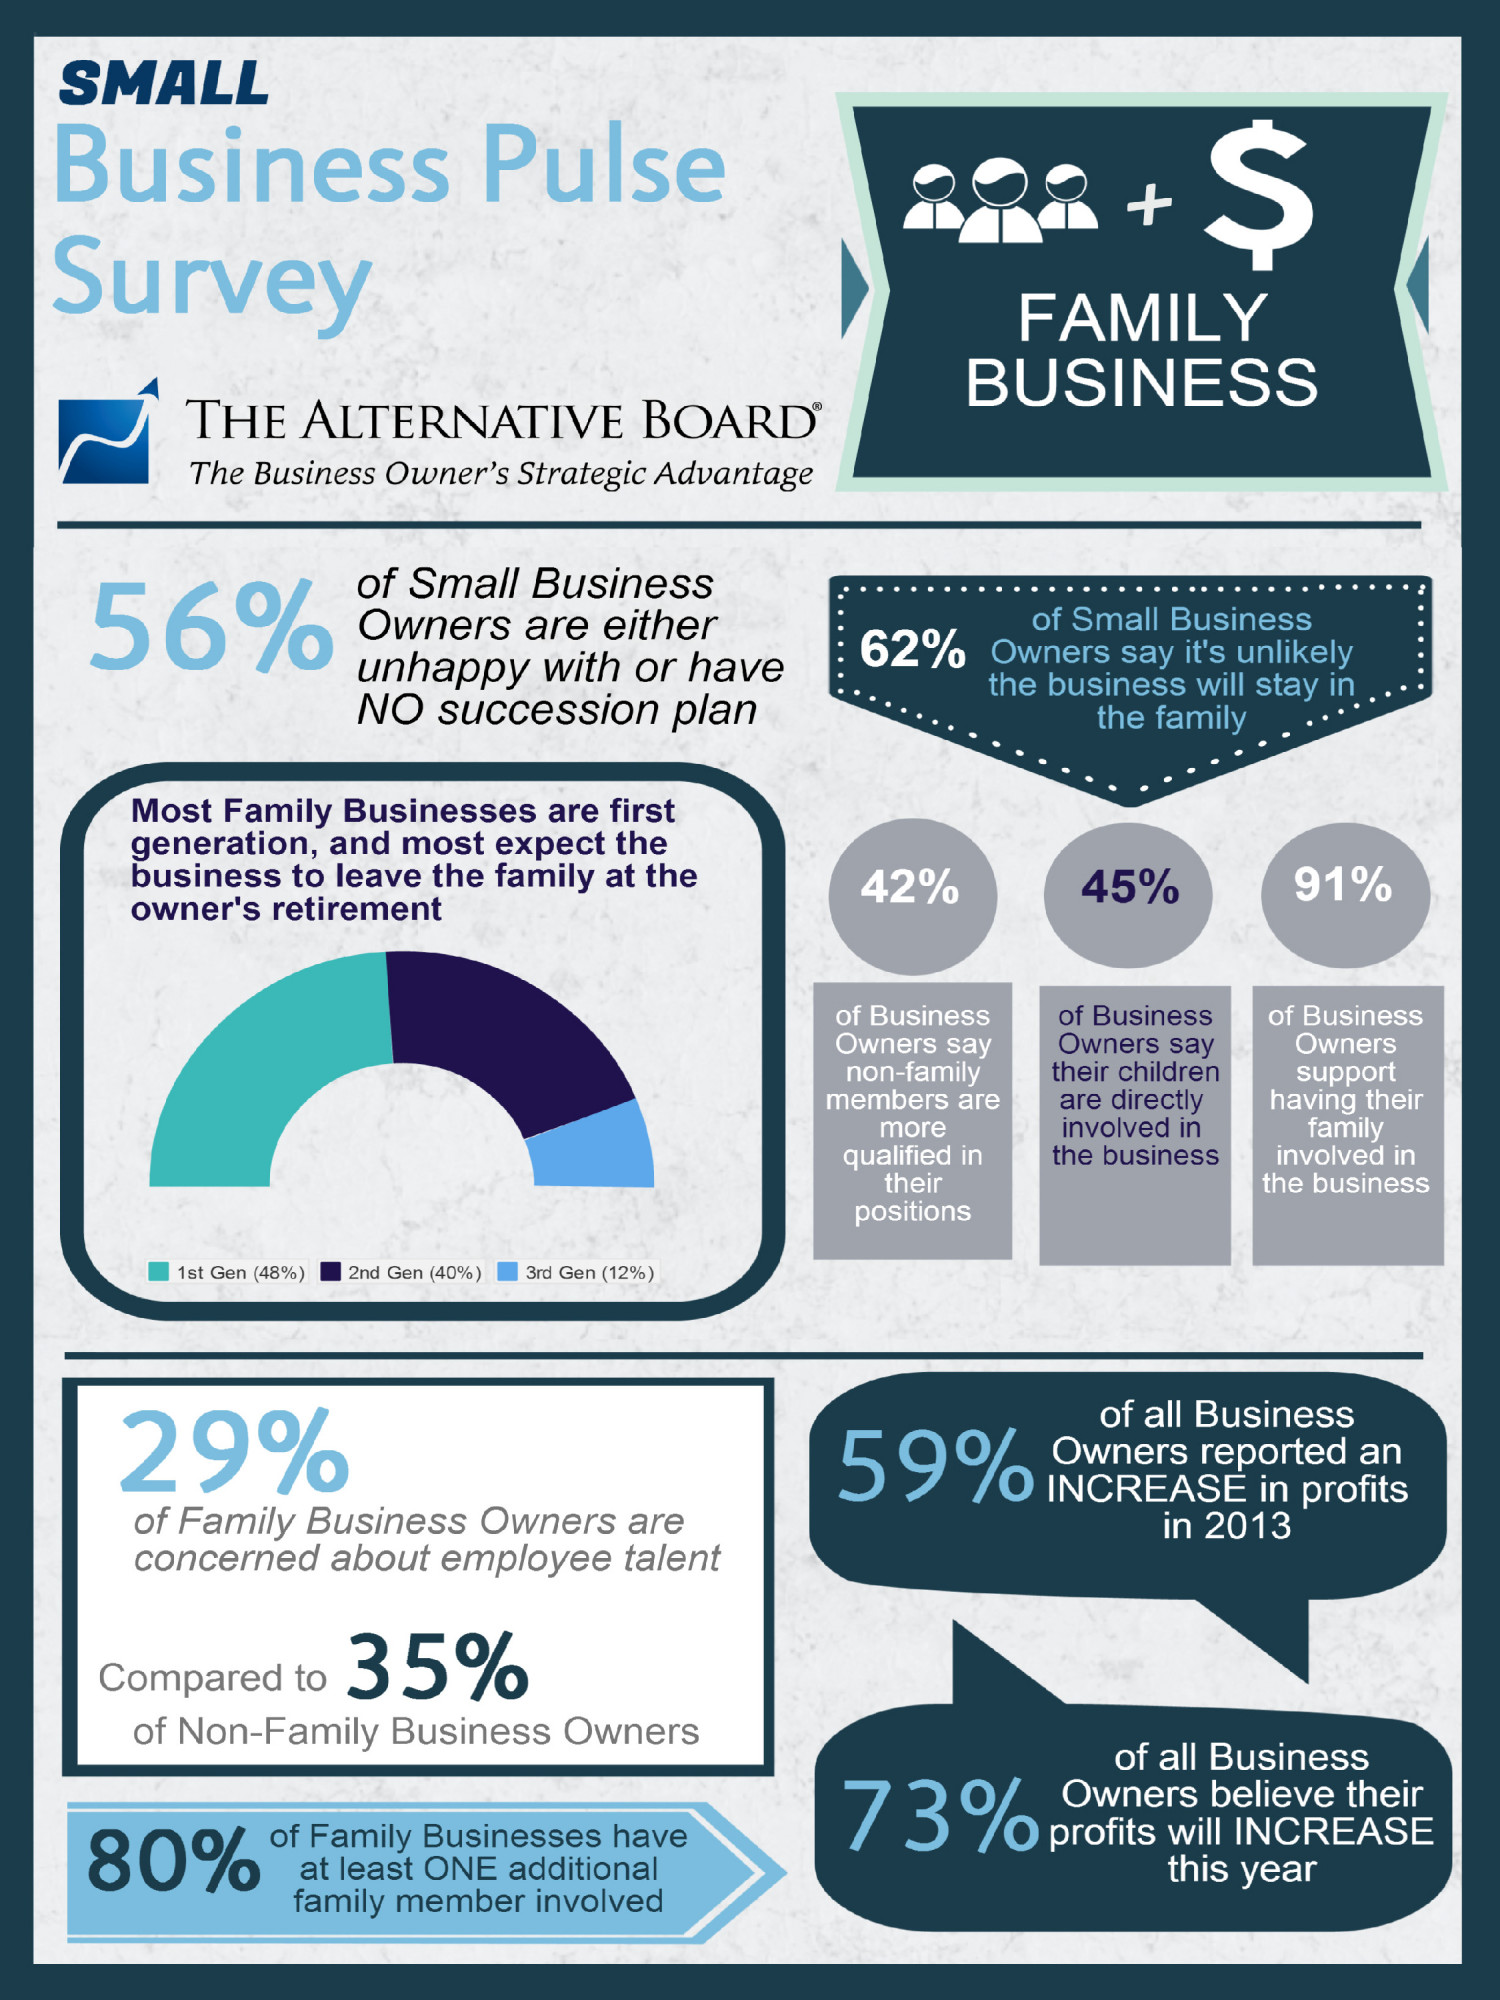 Small Business Pulse Survey: Family Business Infographic